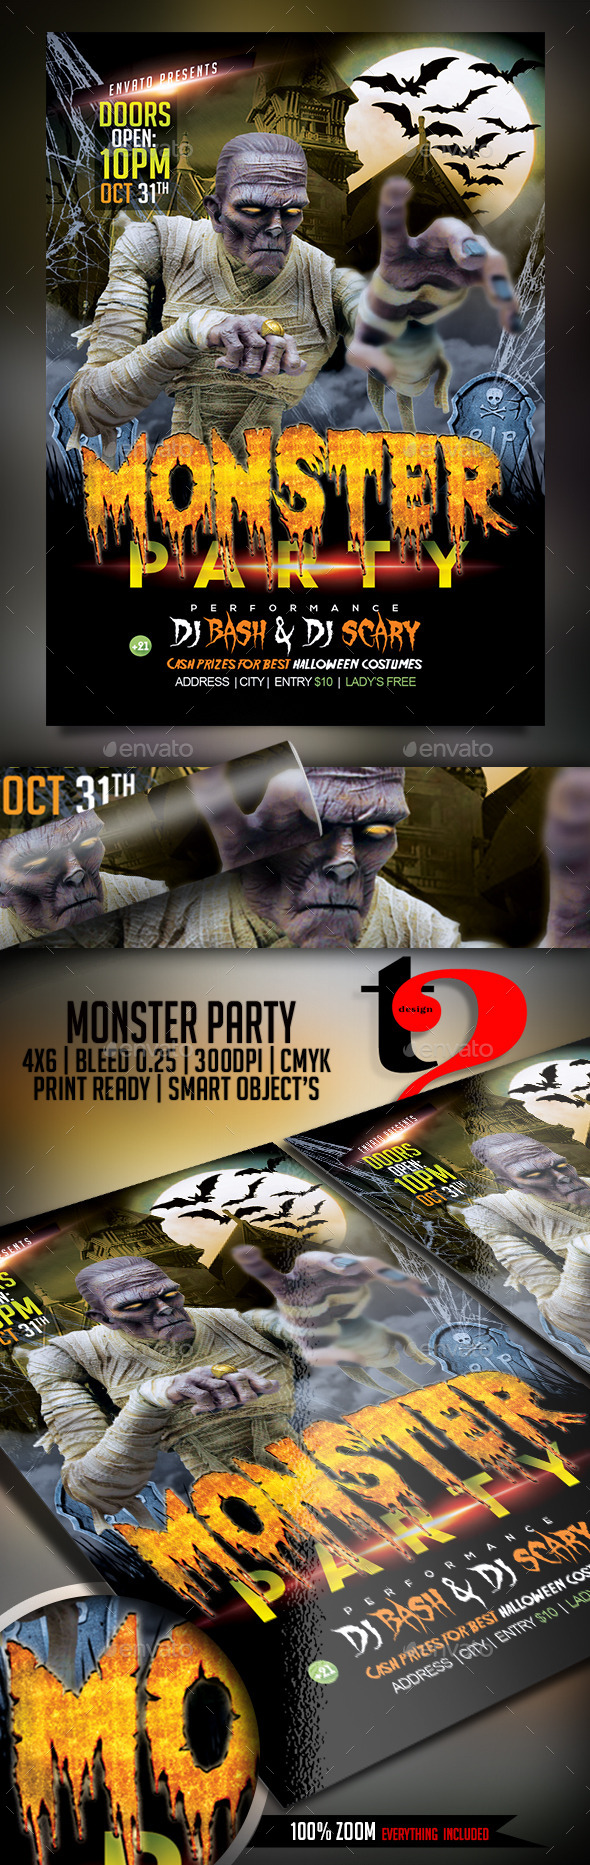 Monster Party-Halloween Celebration